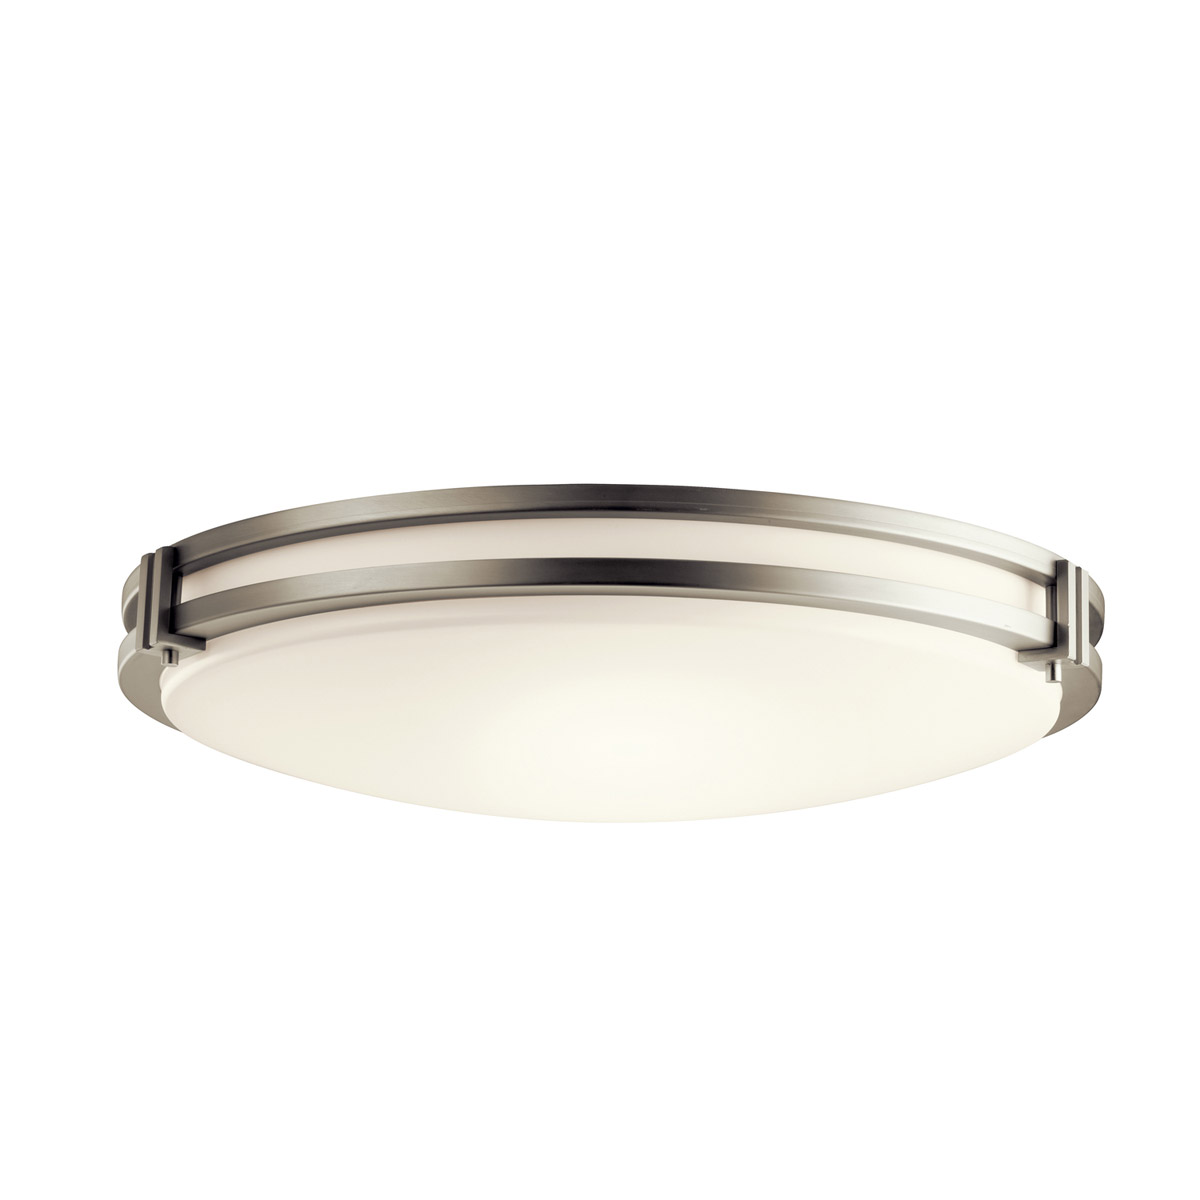 Kichler 10828NI Signature 3 Light 24 inch Brushed Nickel Flush Mount Ceiling Light